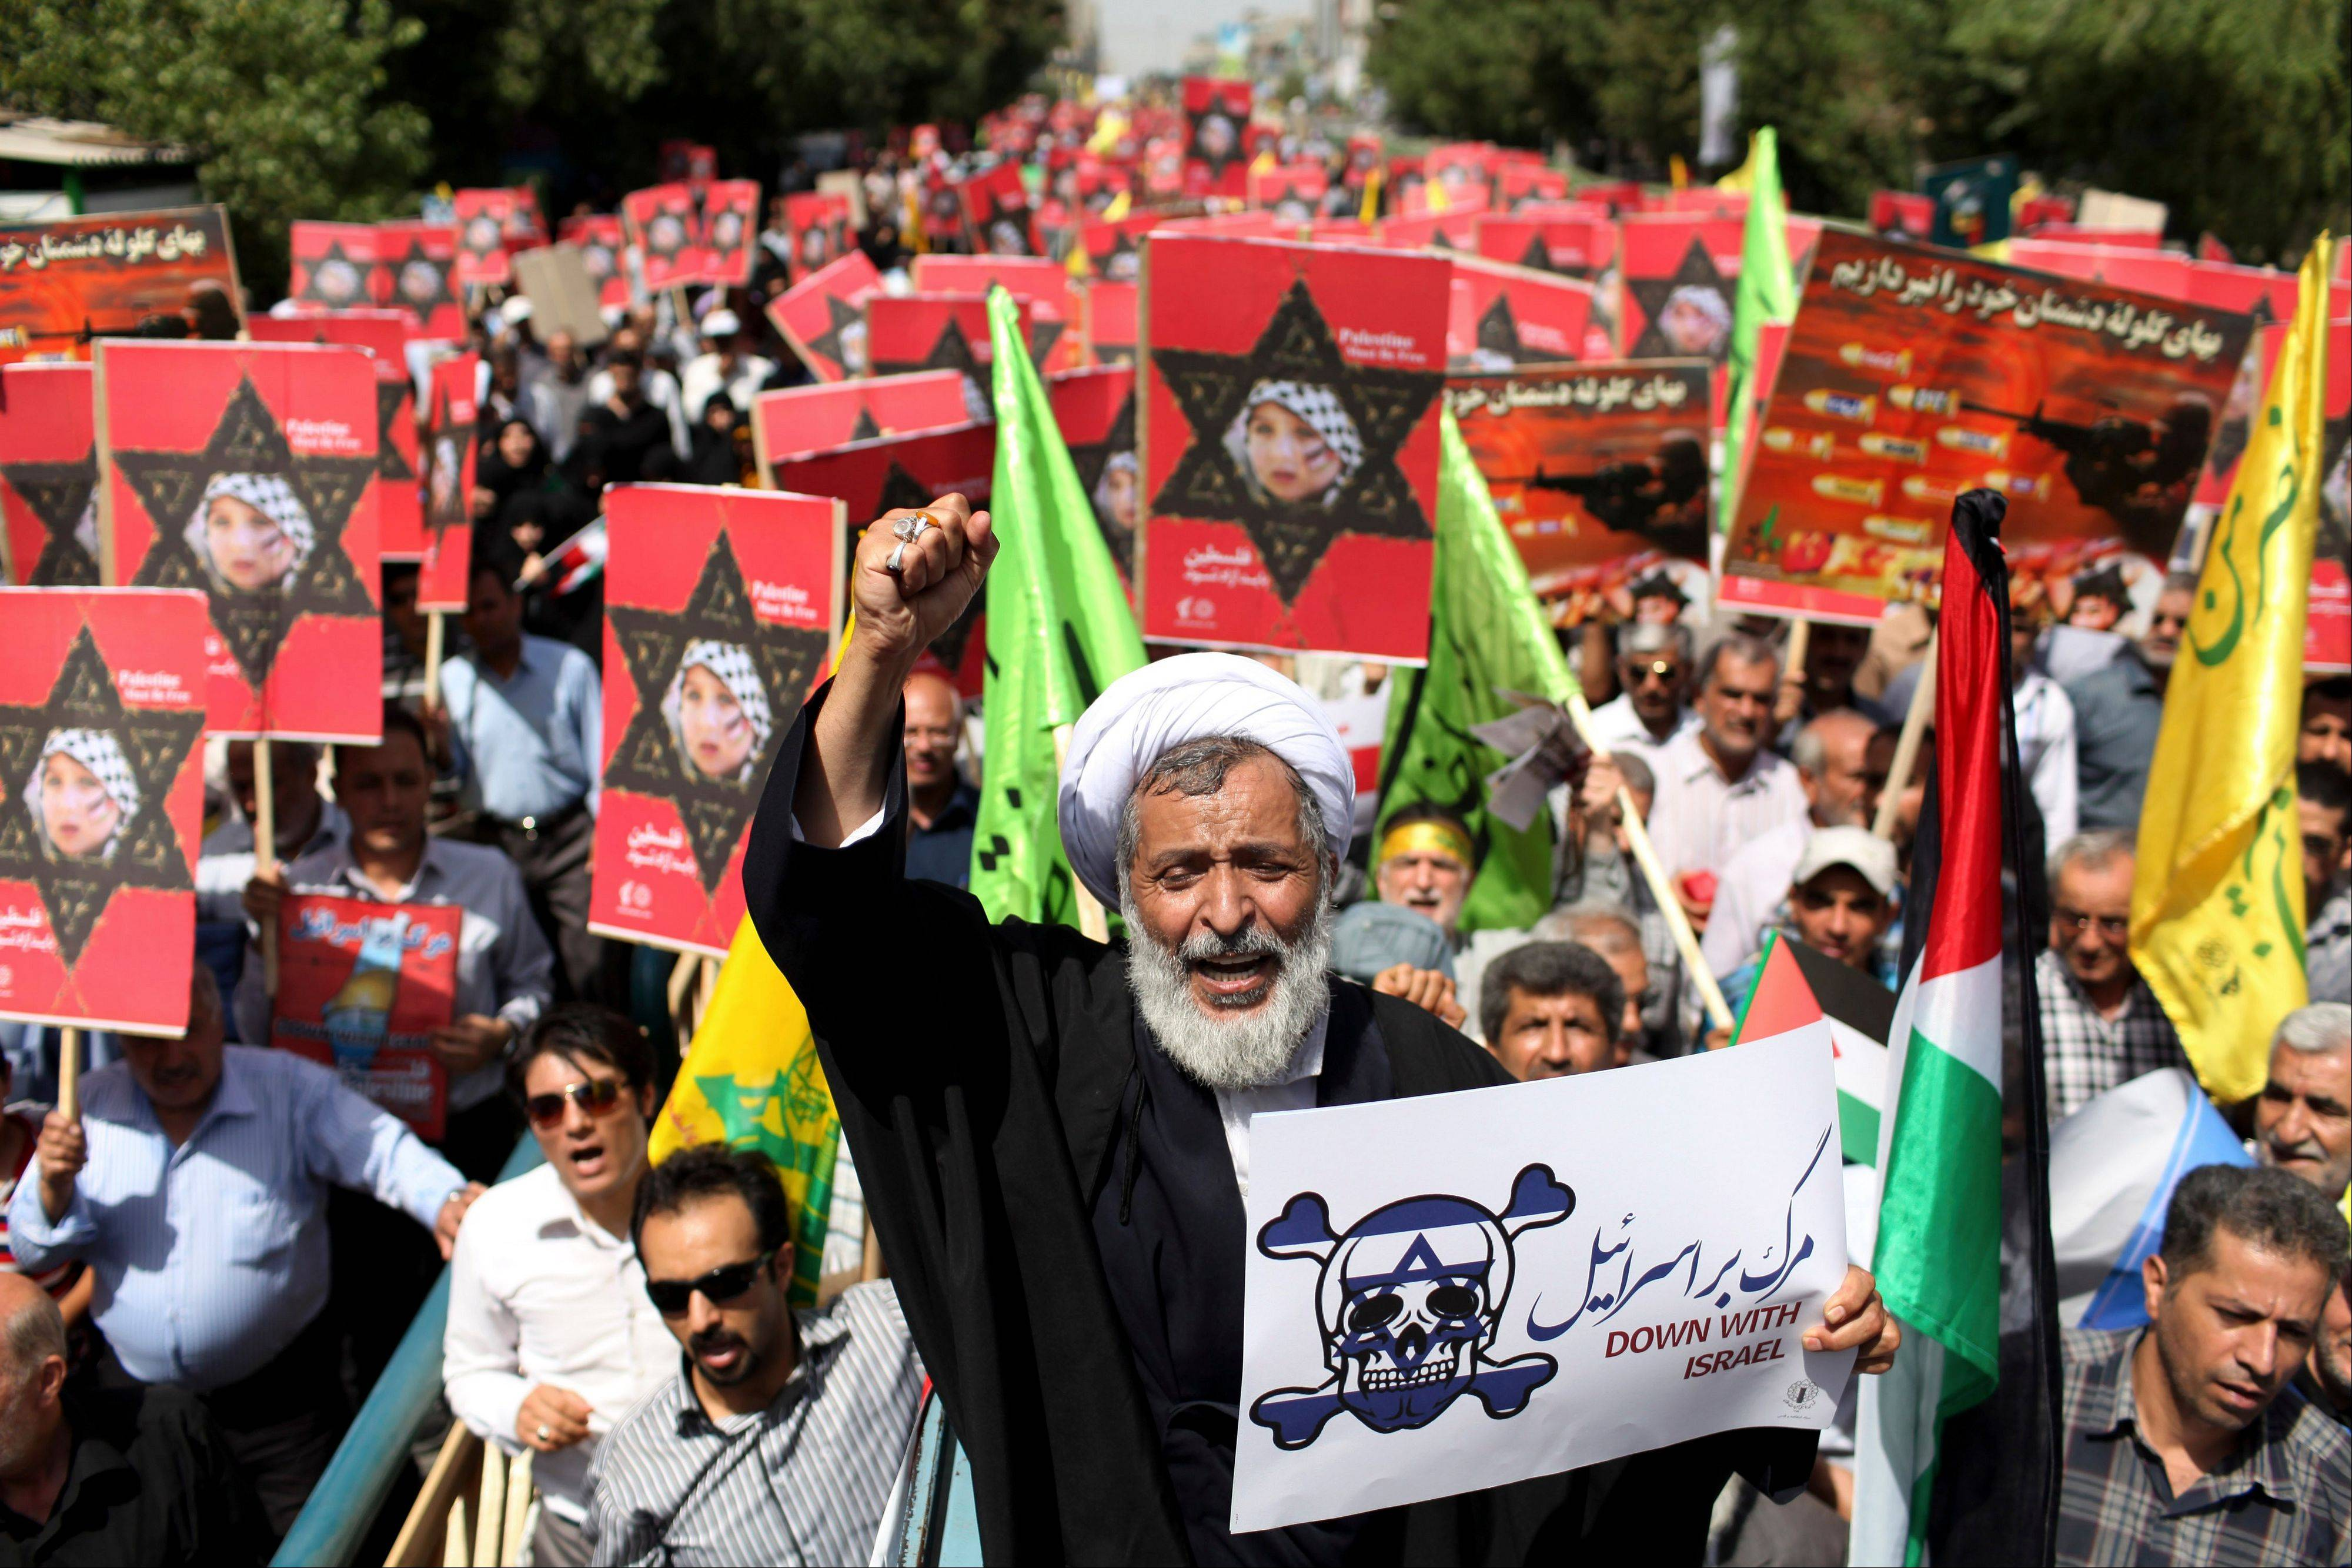 An Iranian cleric holding an anti-Israeli placard chants slogan, while attending an annual pro-Palestinian rally marking Al-Quds (Jerusalem) Day in Tehran, Iran, Friday.